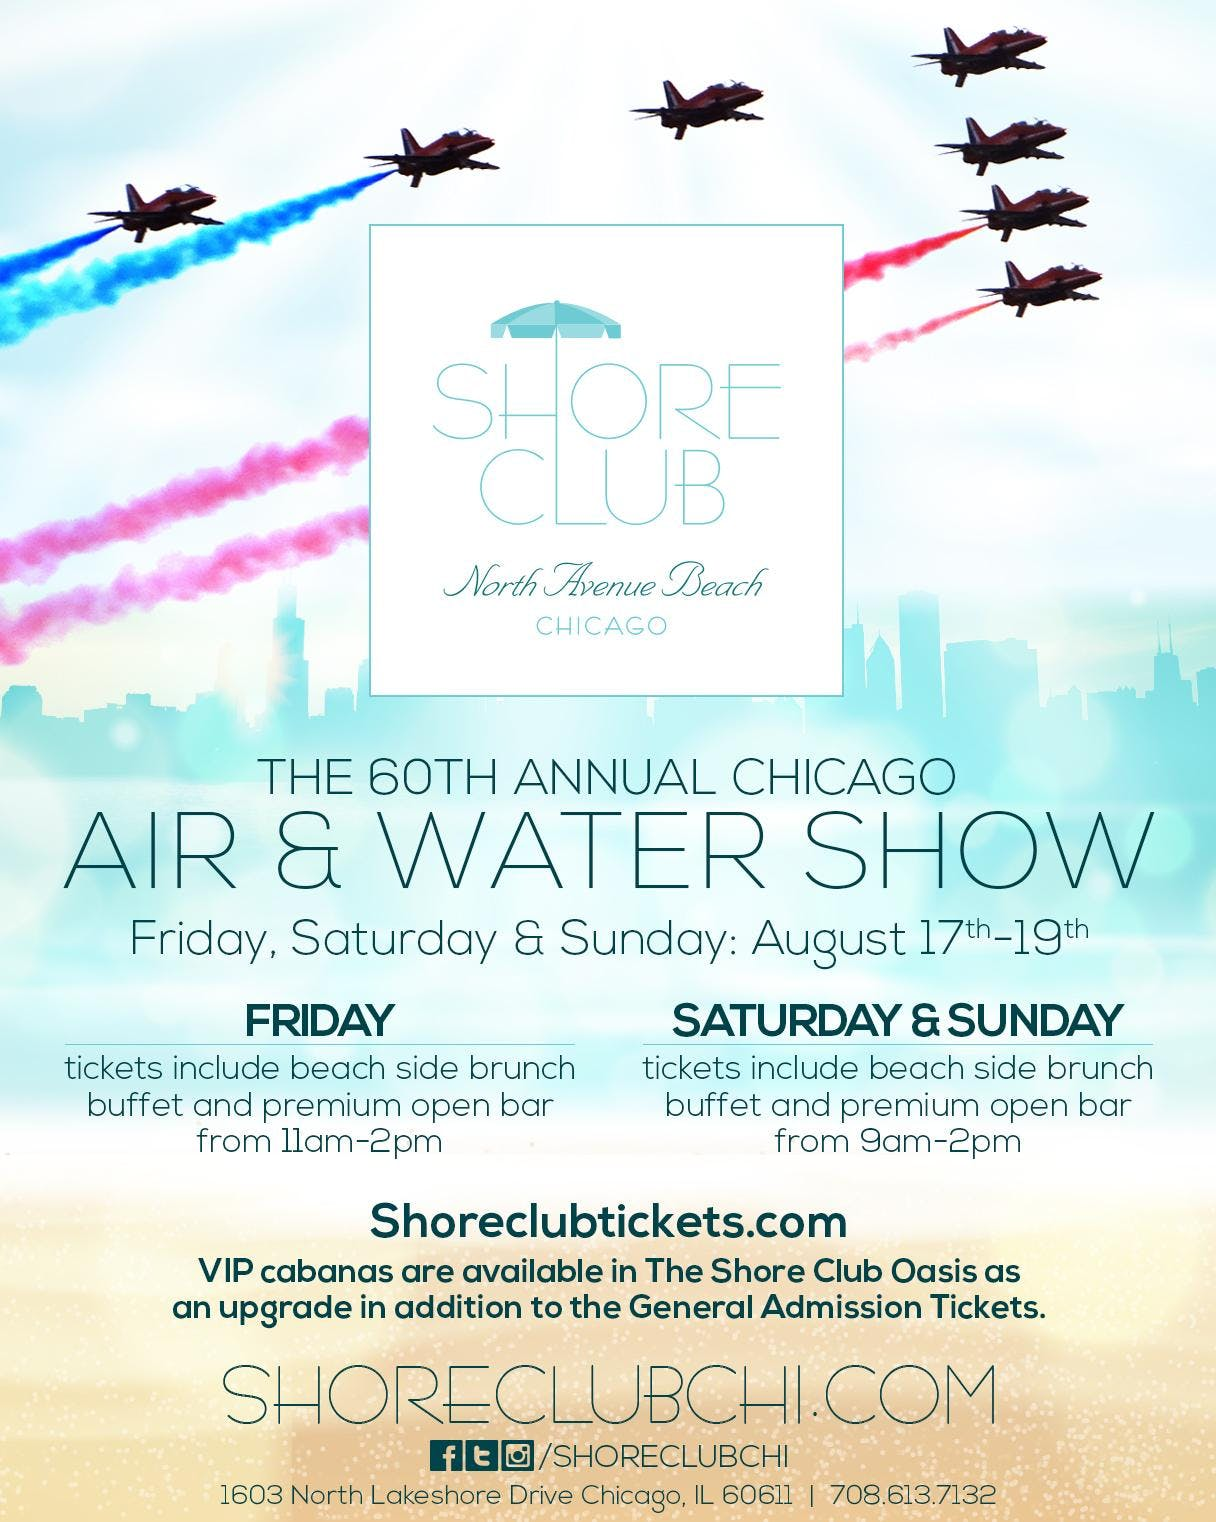 Air & Water Show Saturday 8/18